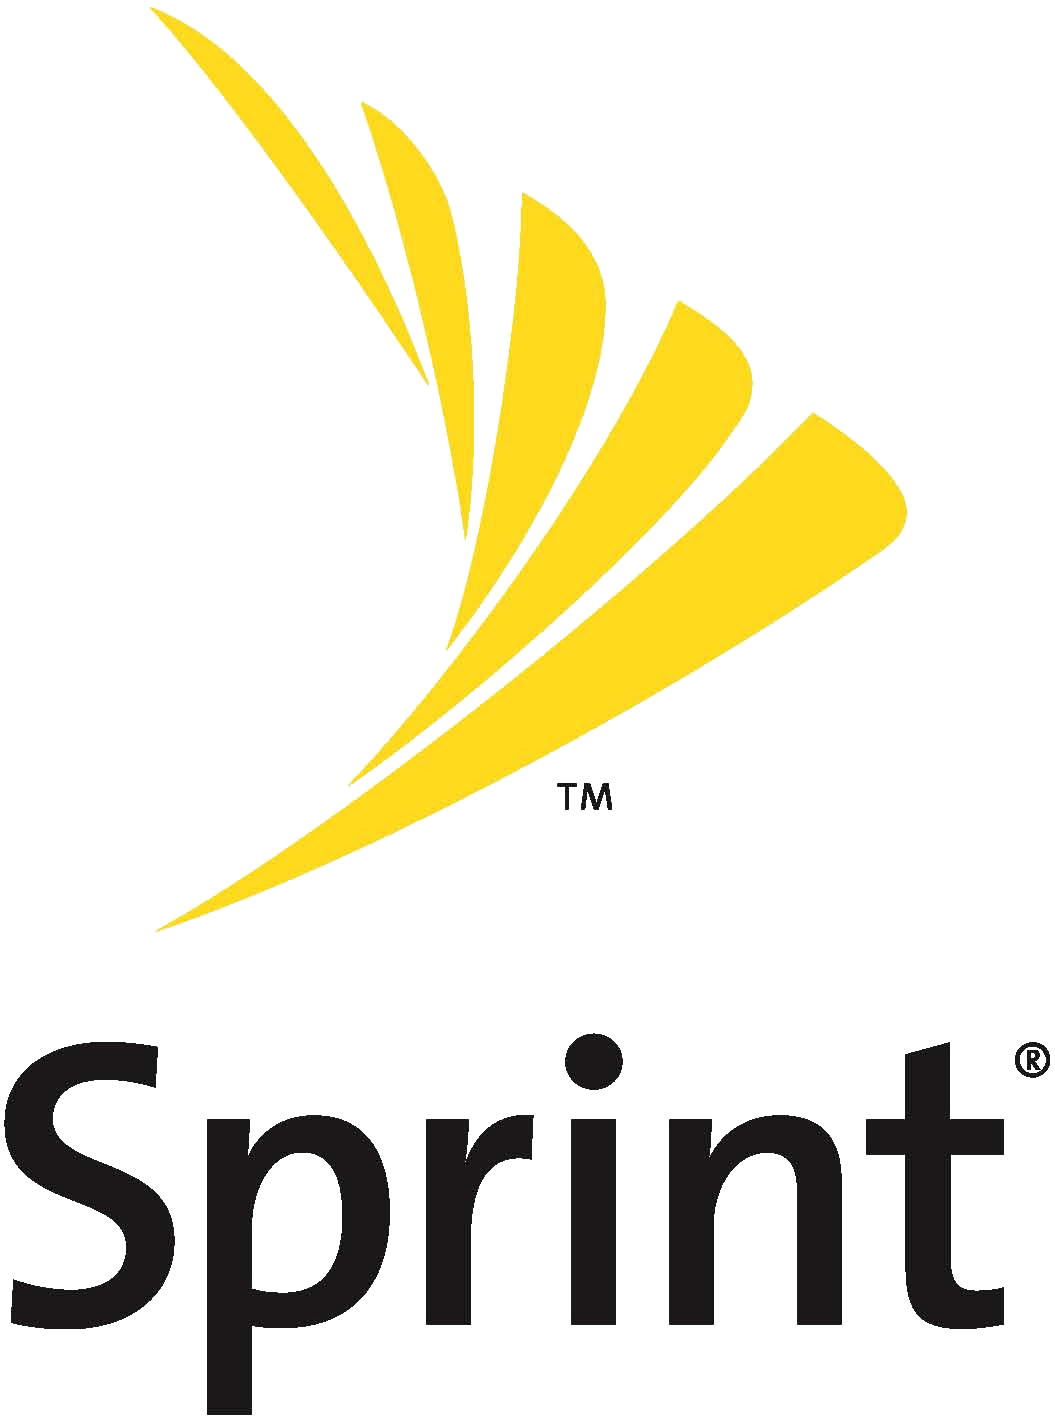 Sprint to Offer Office 365 Through Its Business Solutions